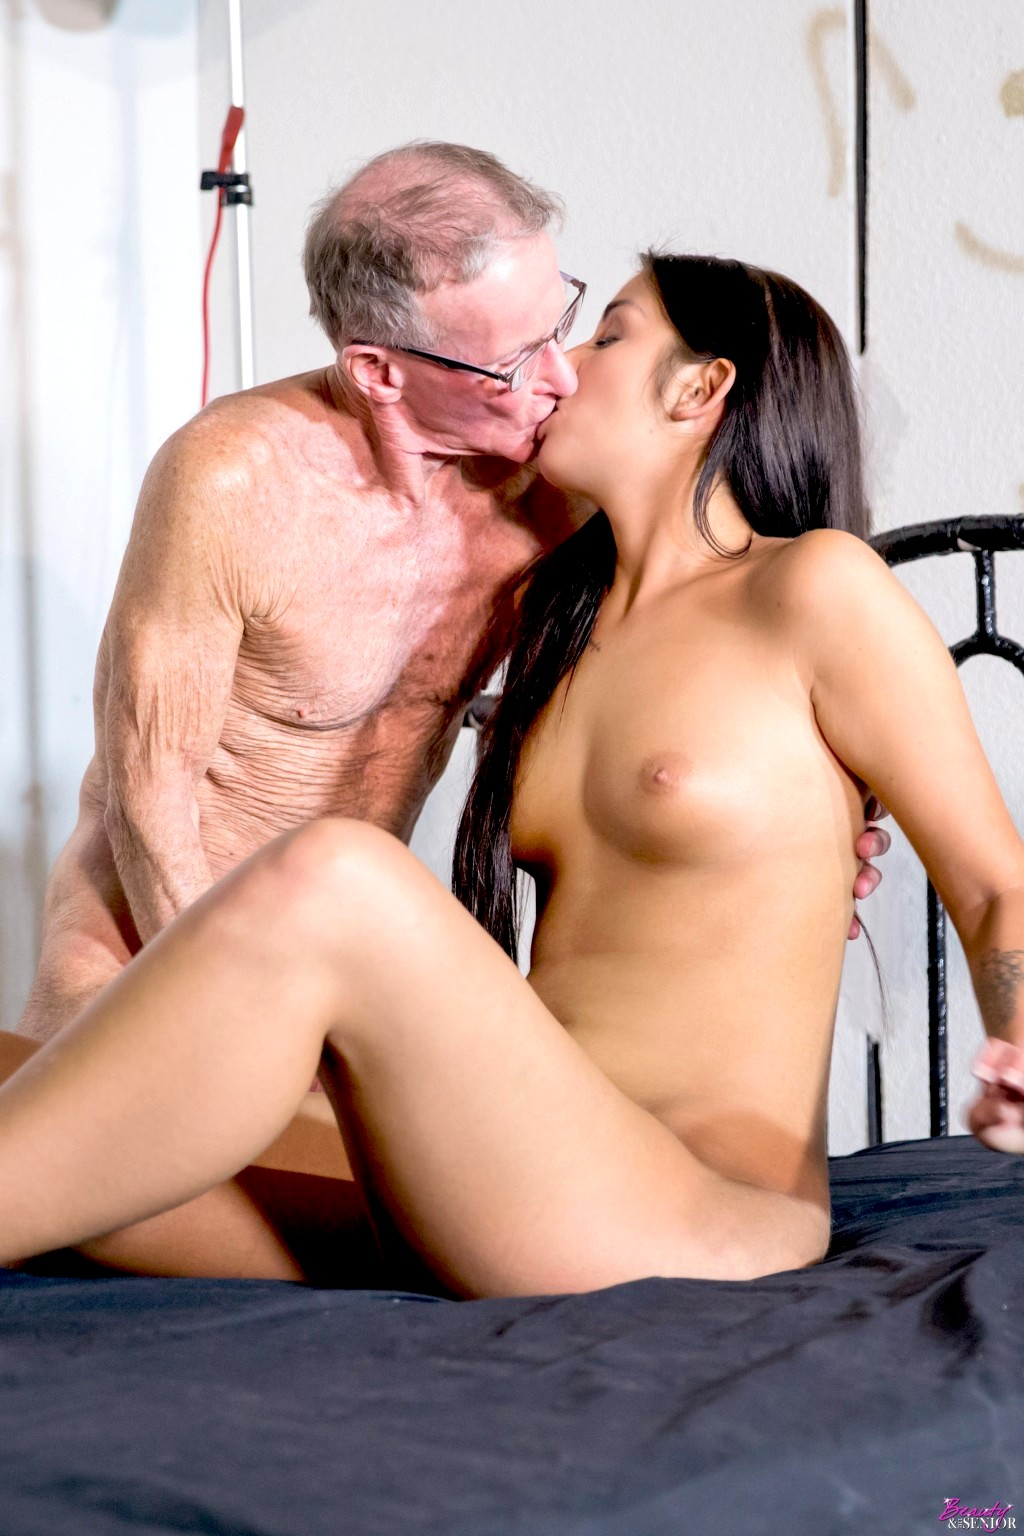 Older Guy Fucks Younger Girl